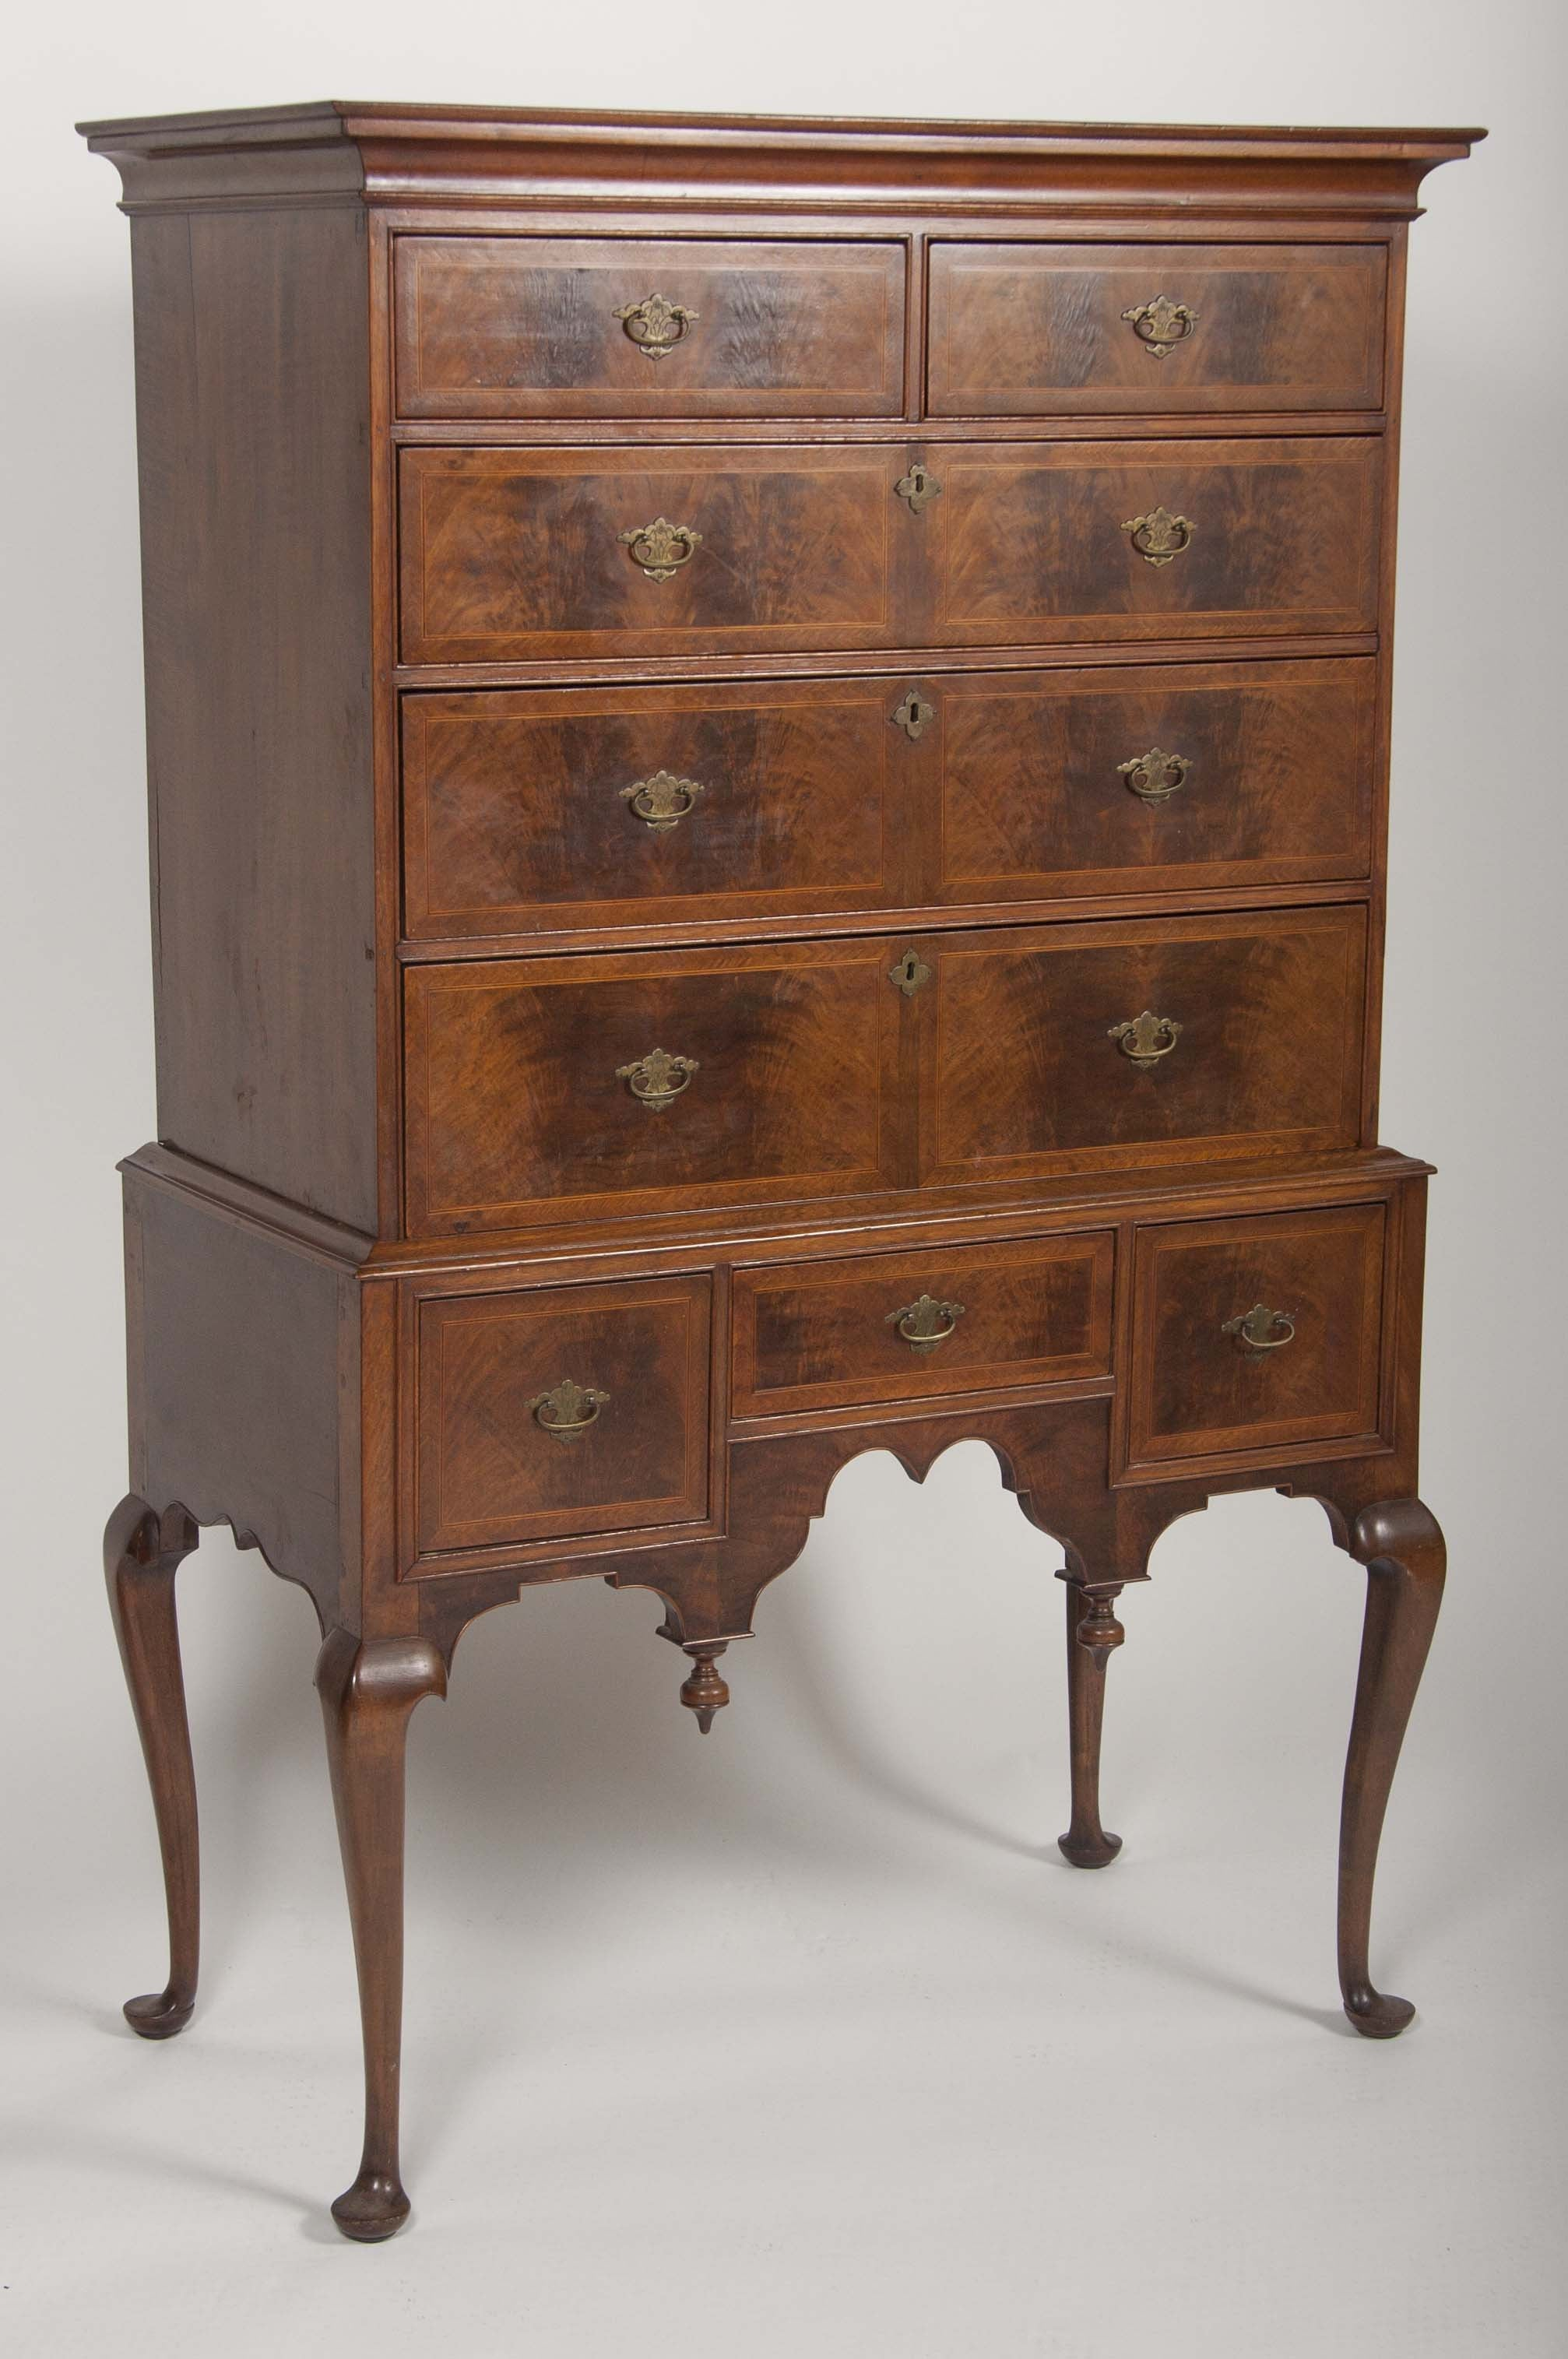 coffey boy highboy drawers high product chest mid perspecta of kent walnut dresser century rosewood